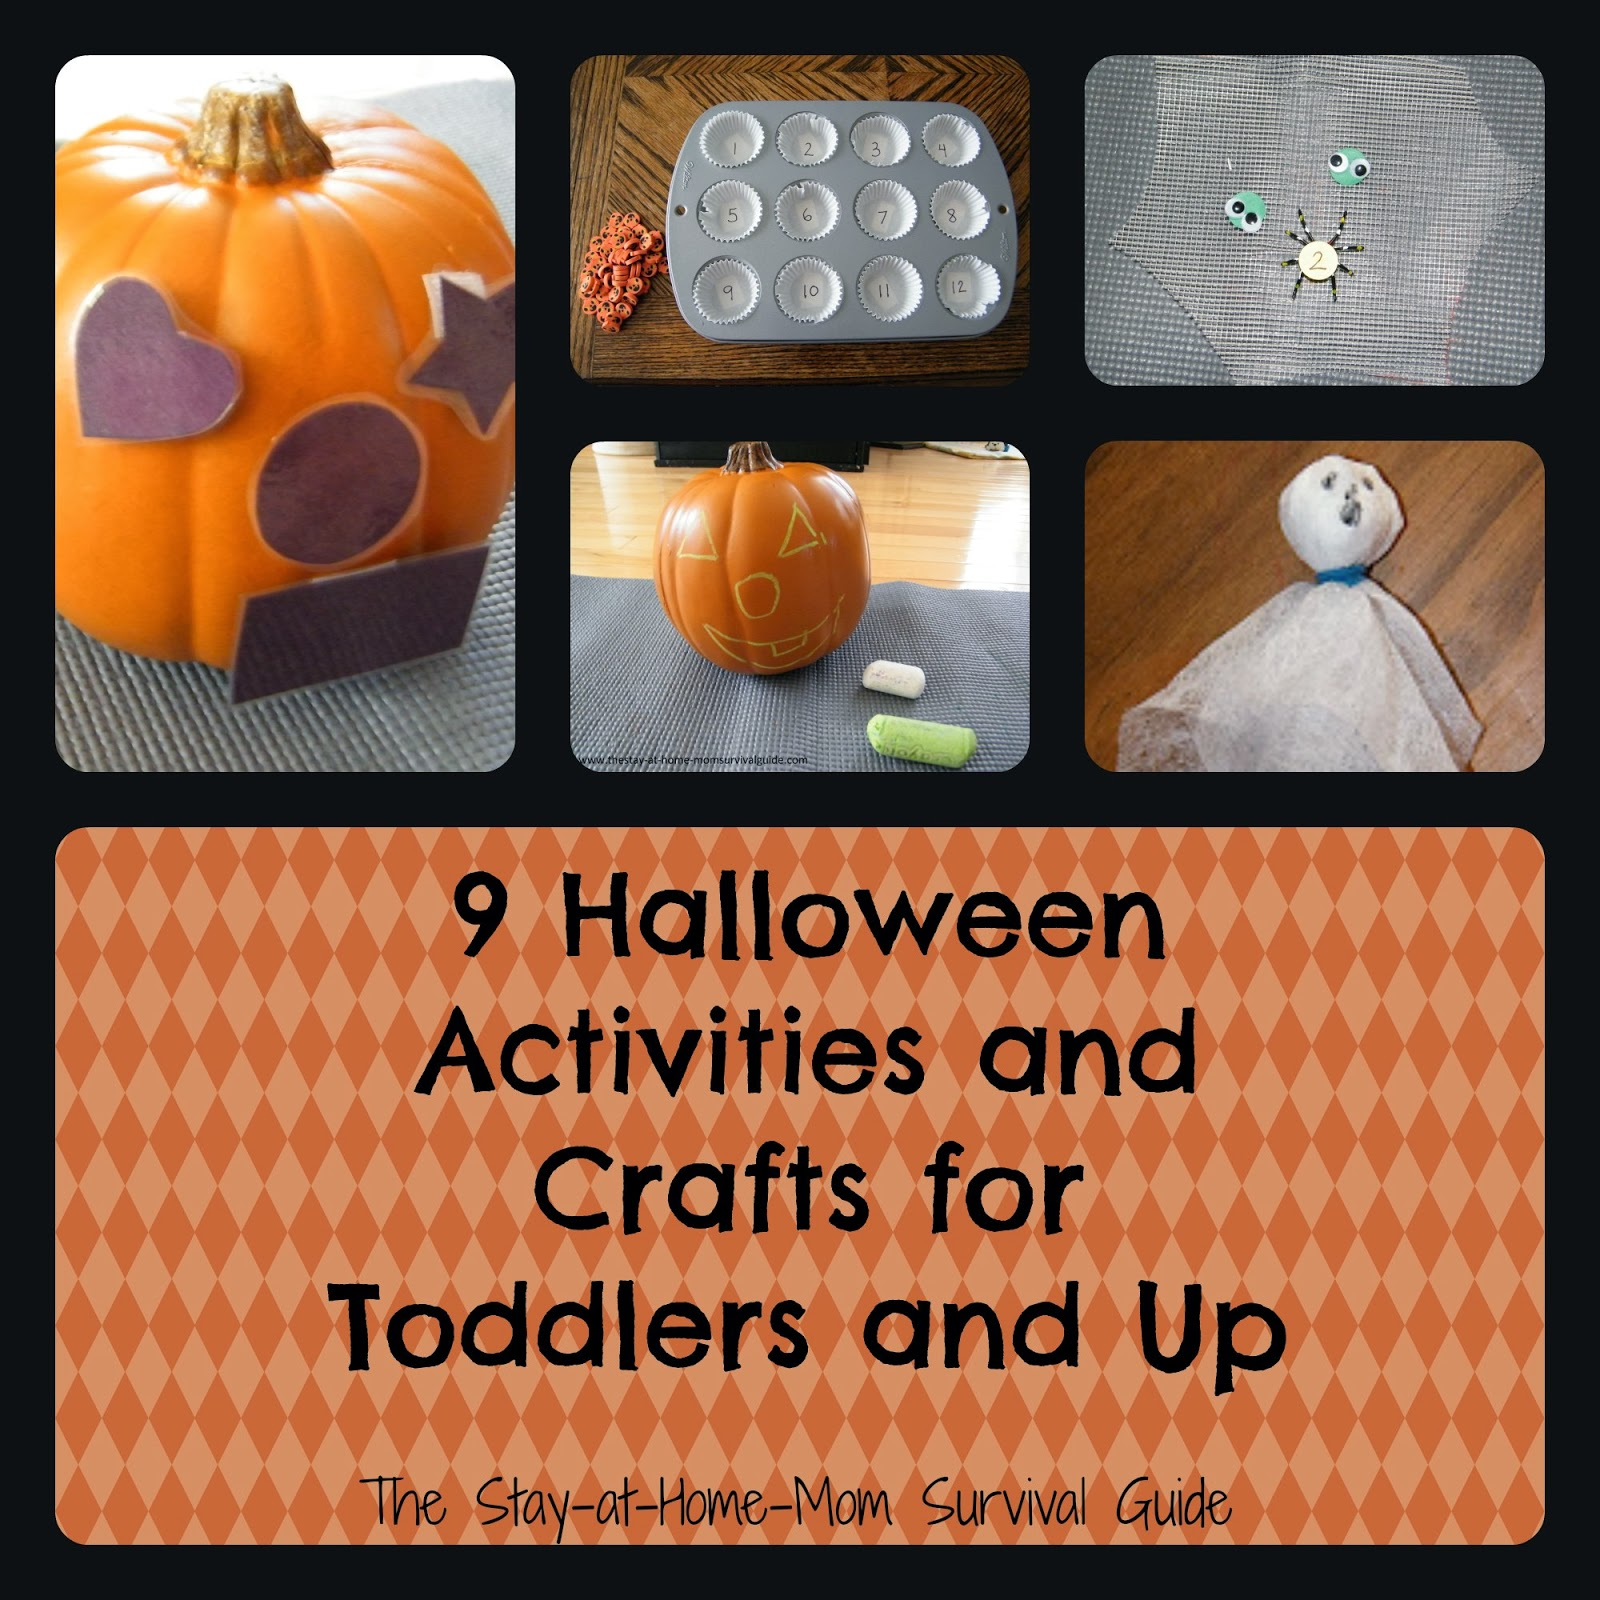 9 Halloween Activities and Crafts for Toddlers, Preschool and School Age kids.